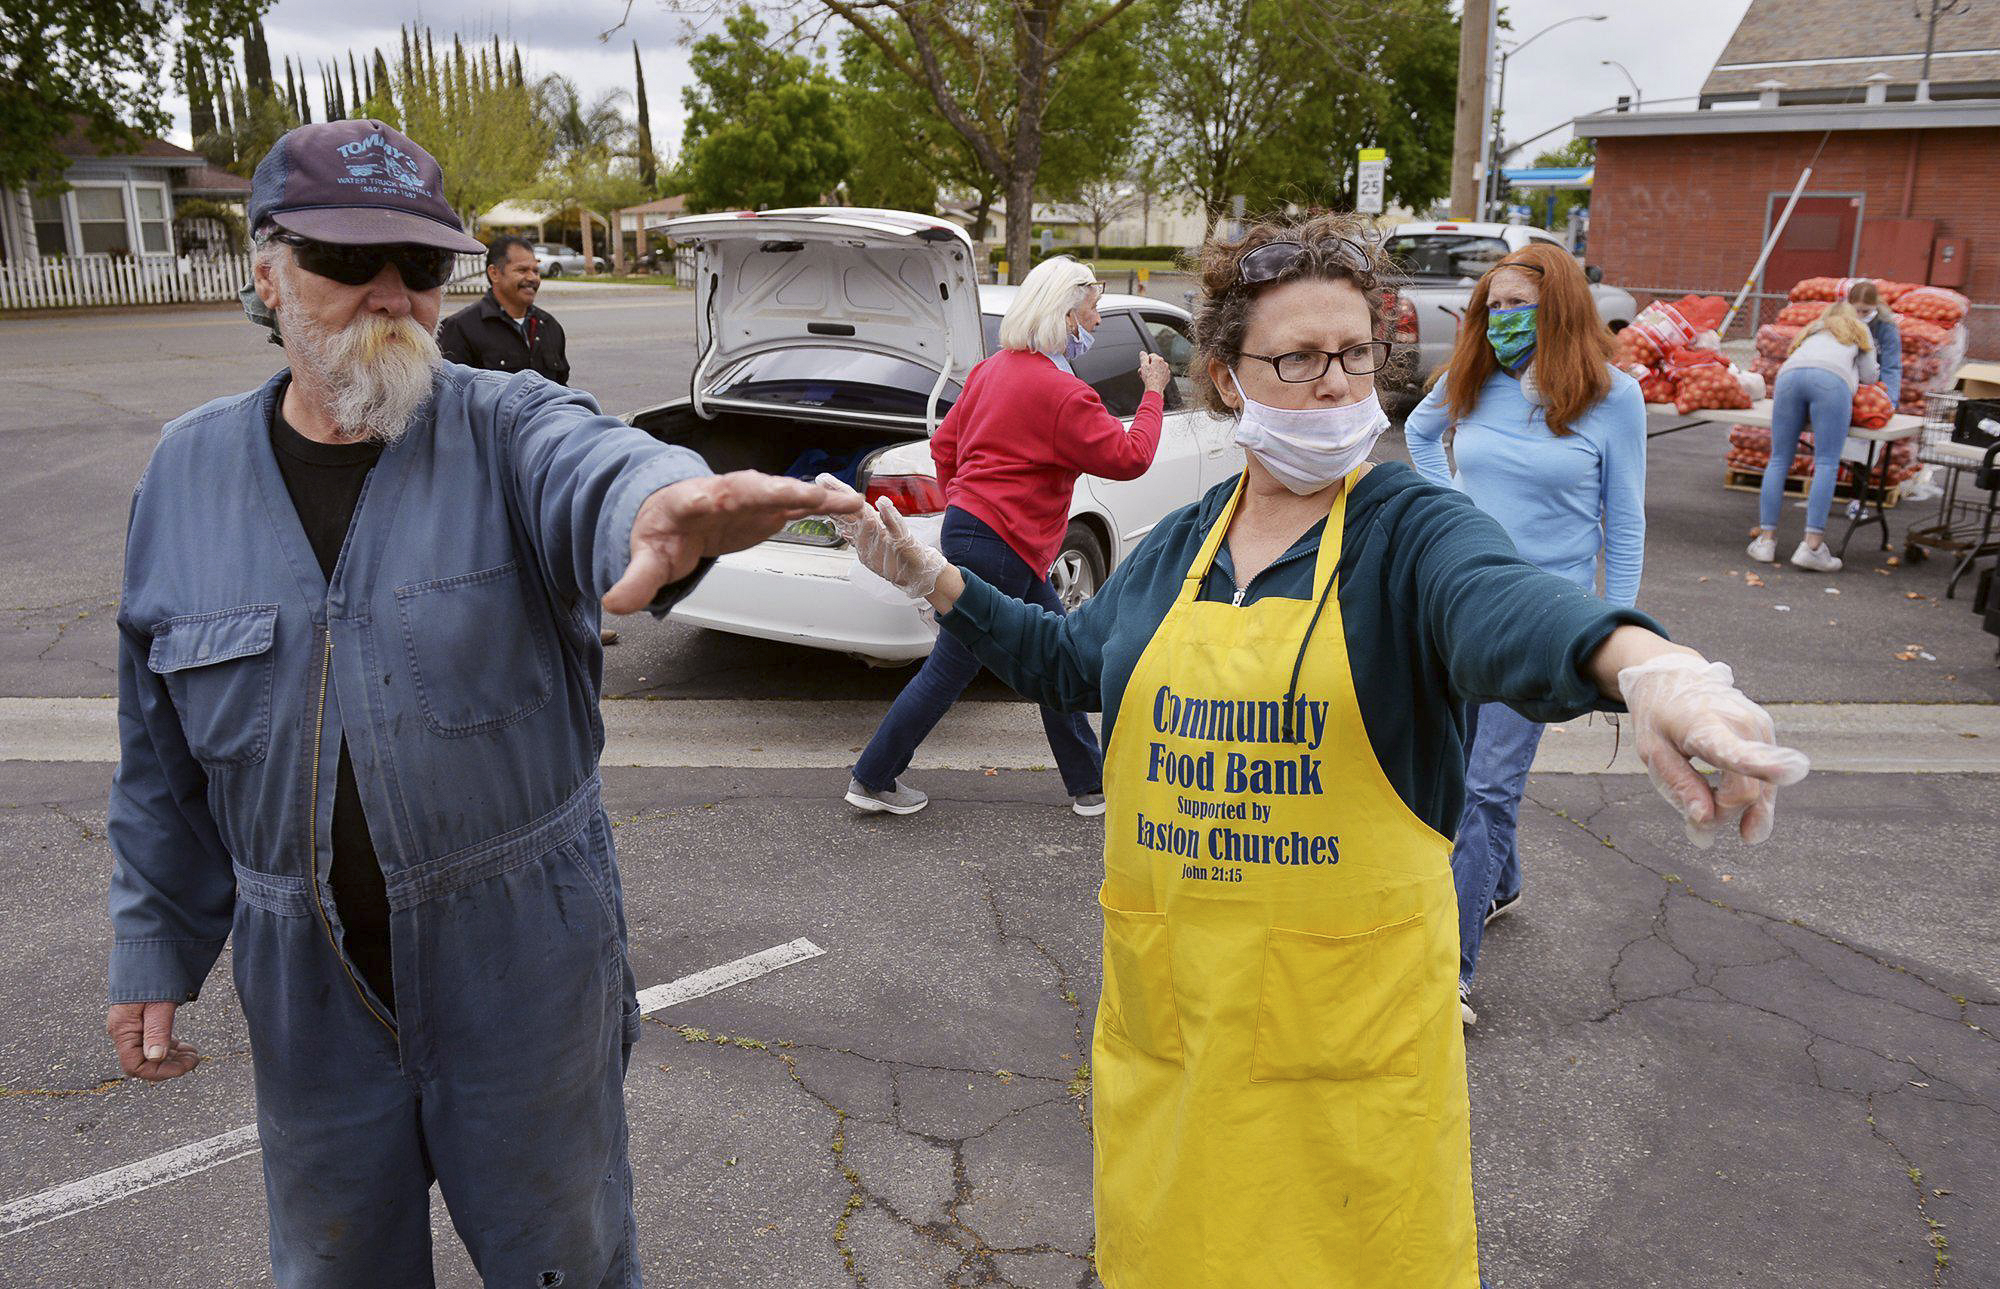 Victoria Salwasser, right, directs Curtis Smith, left, as volunteers distribute food to families in cars at a food bank giveaway held at Easton Presbyterian Church Monday, April 6, 2020 in Easton. Photo by Eric Paul Zamora, The Fresno Bee